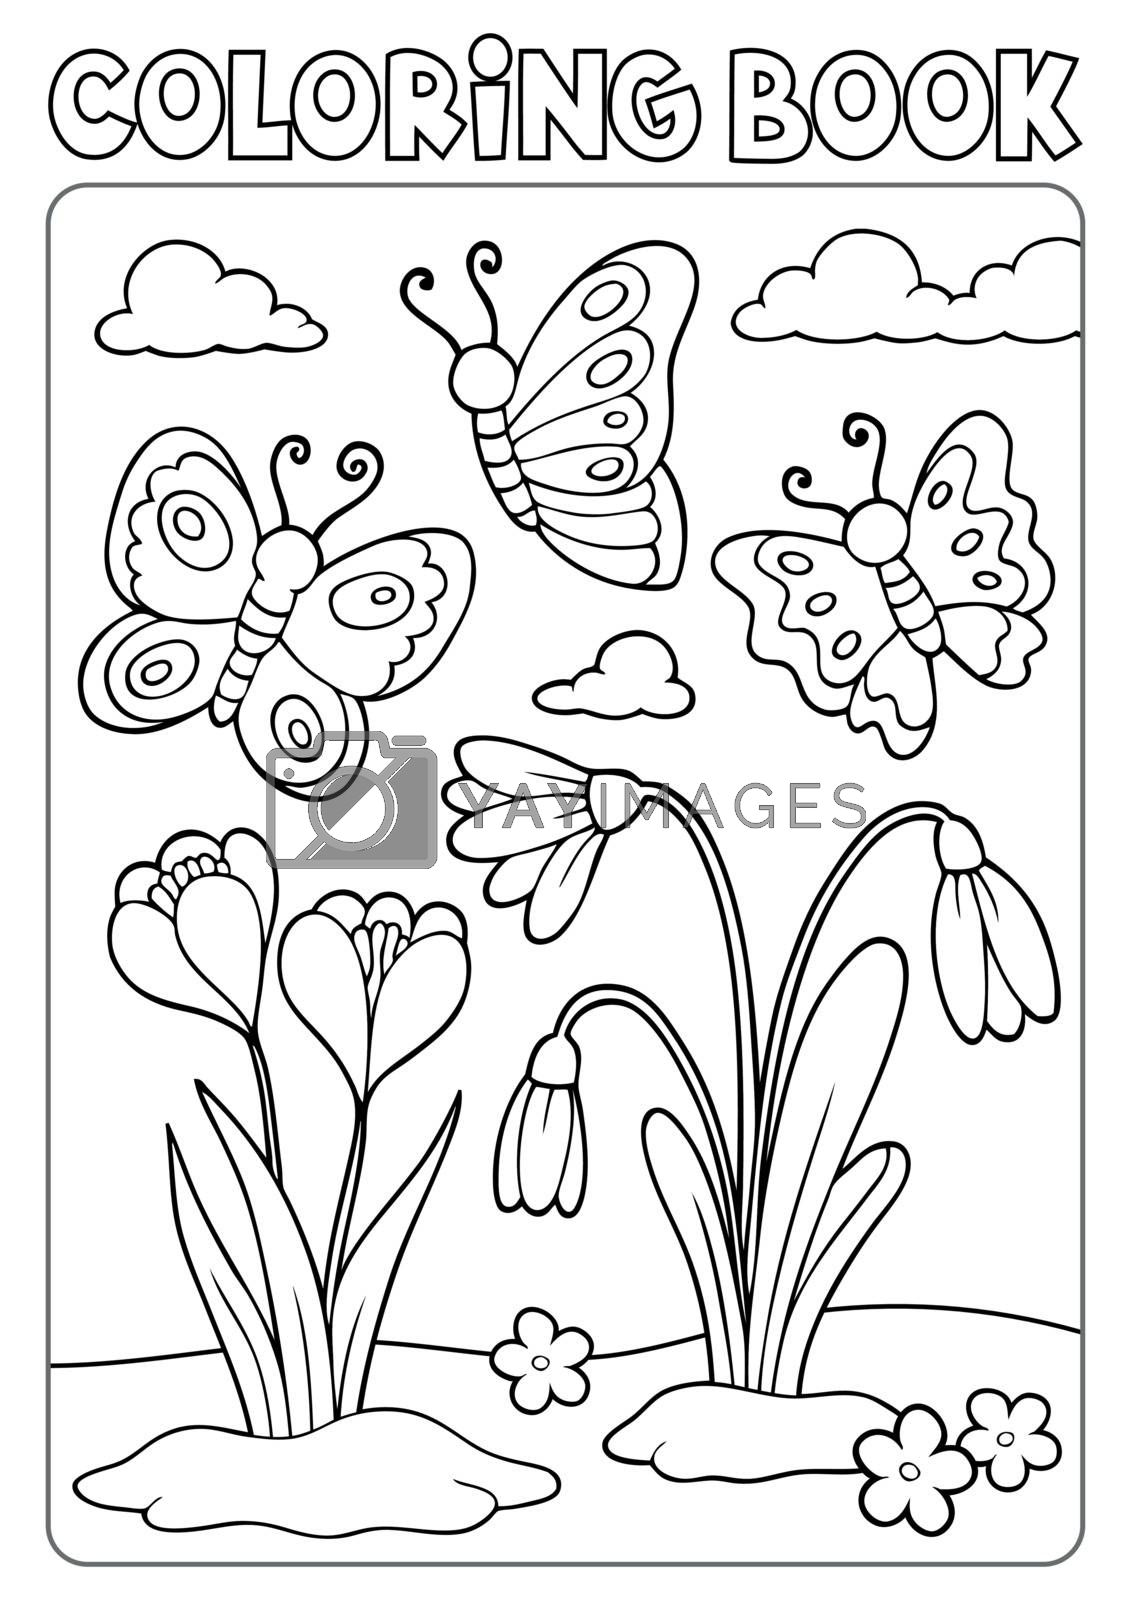 Coloring book spring flowers and butterflies - eps10 vector illustration.